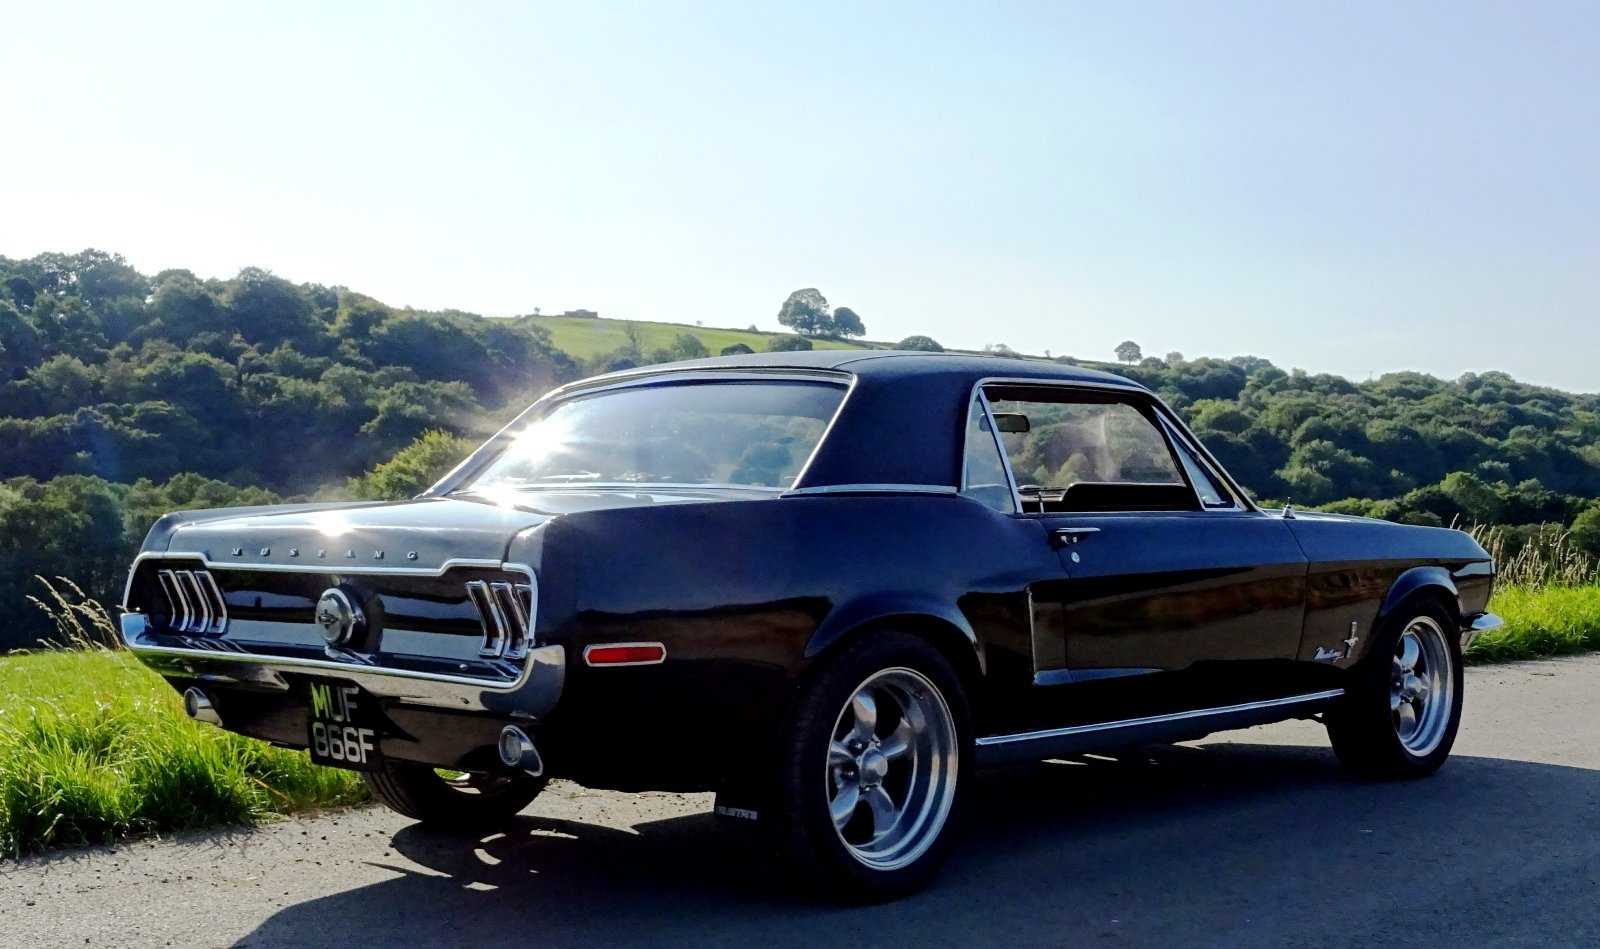 1968 AWESOME FORD MUSTANG AMERICAN V8 CLASSIC MUSCLE CAR For Sale (picture 4 of 12)